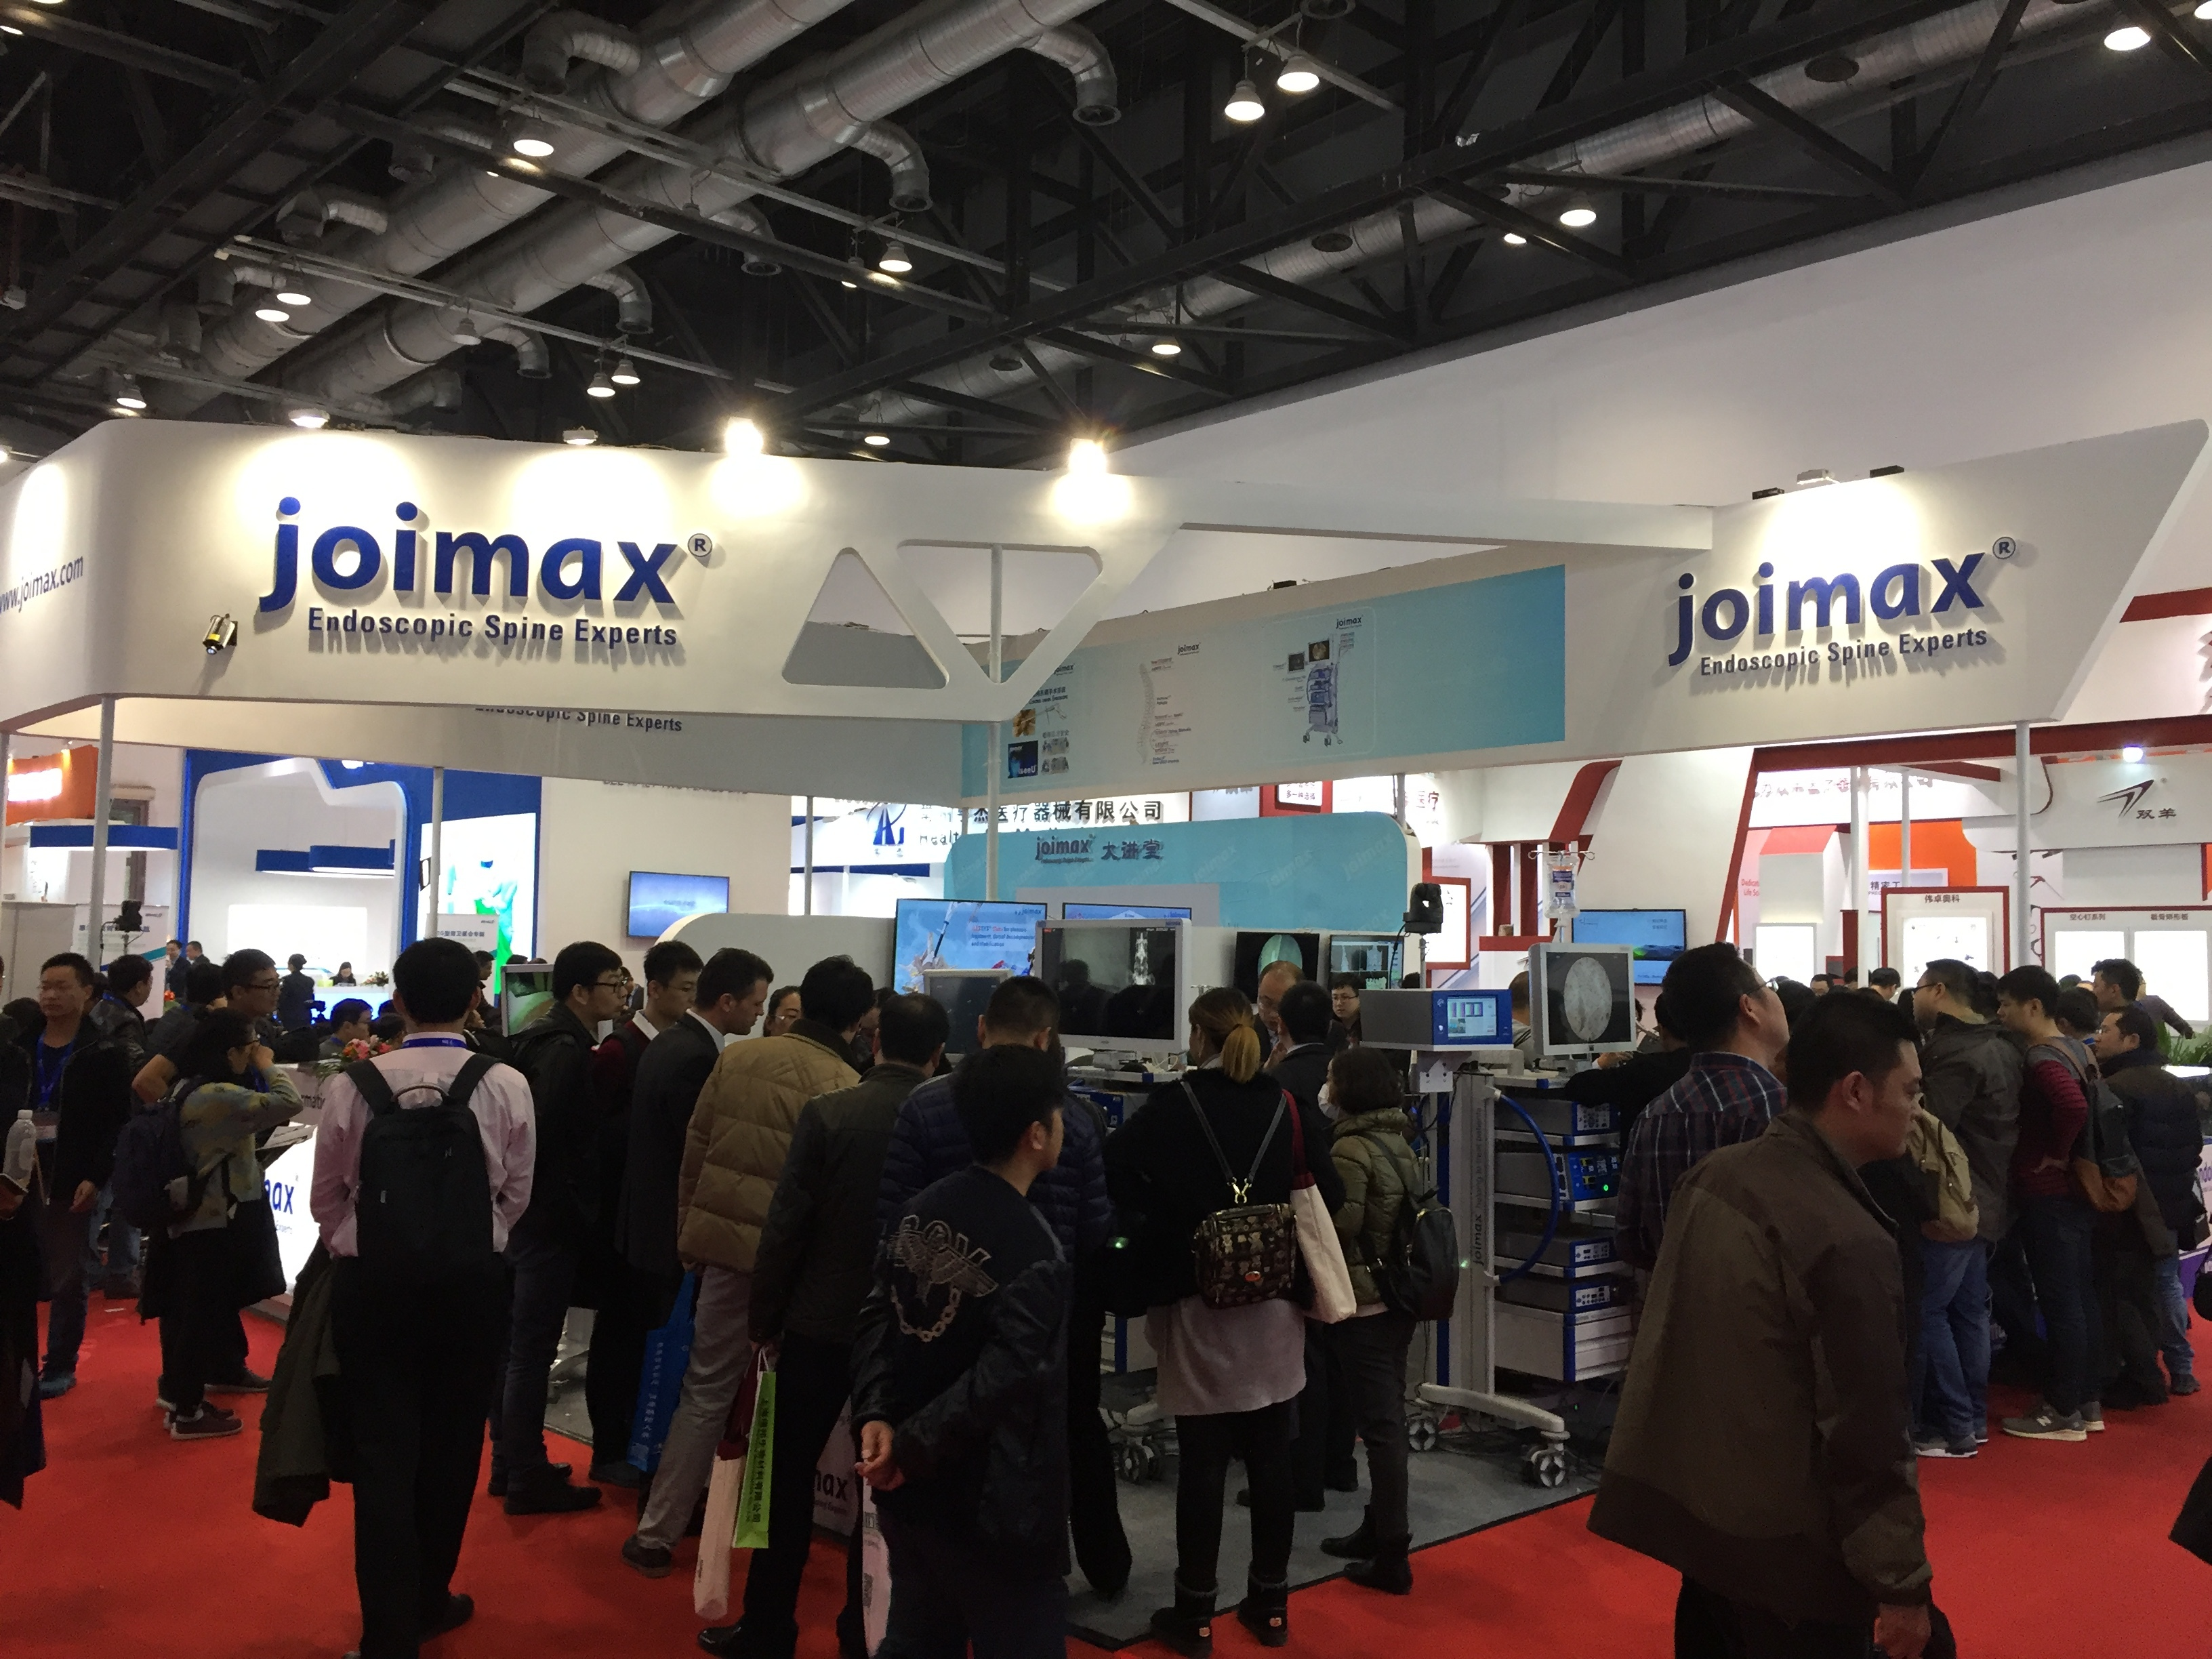 joimax® booth at COA (Photo: Business Wire)